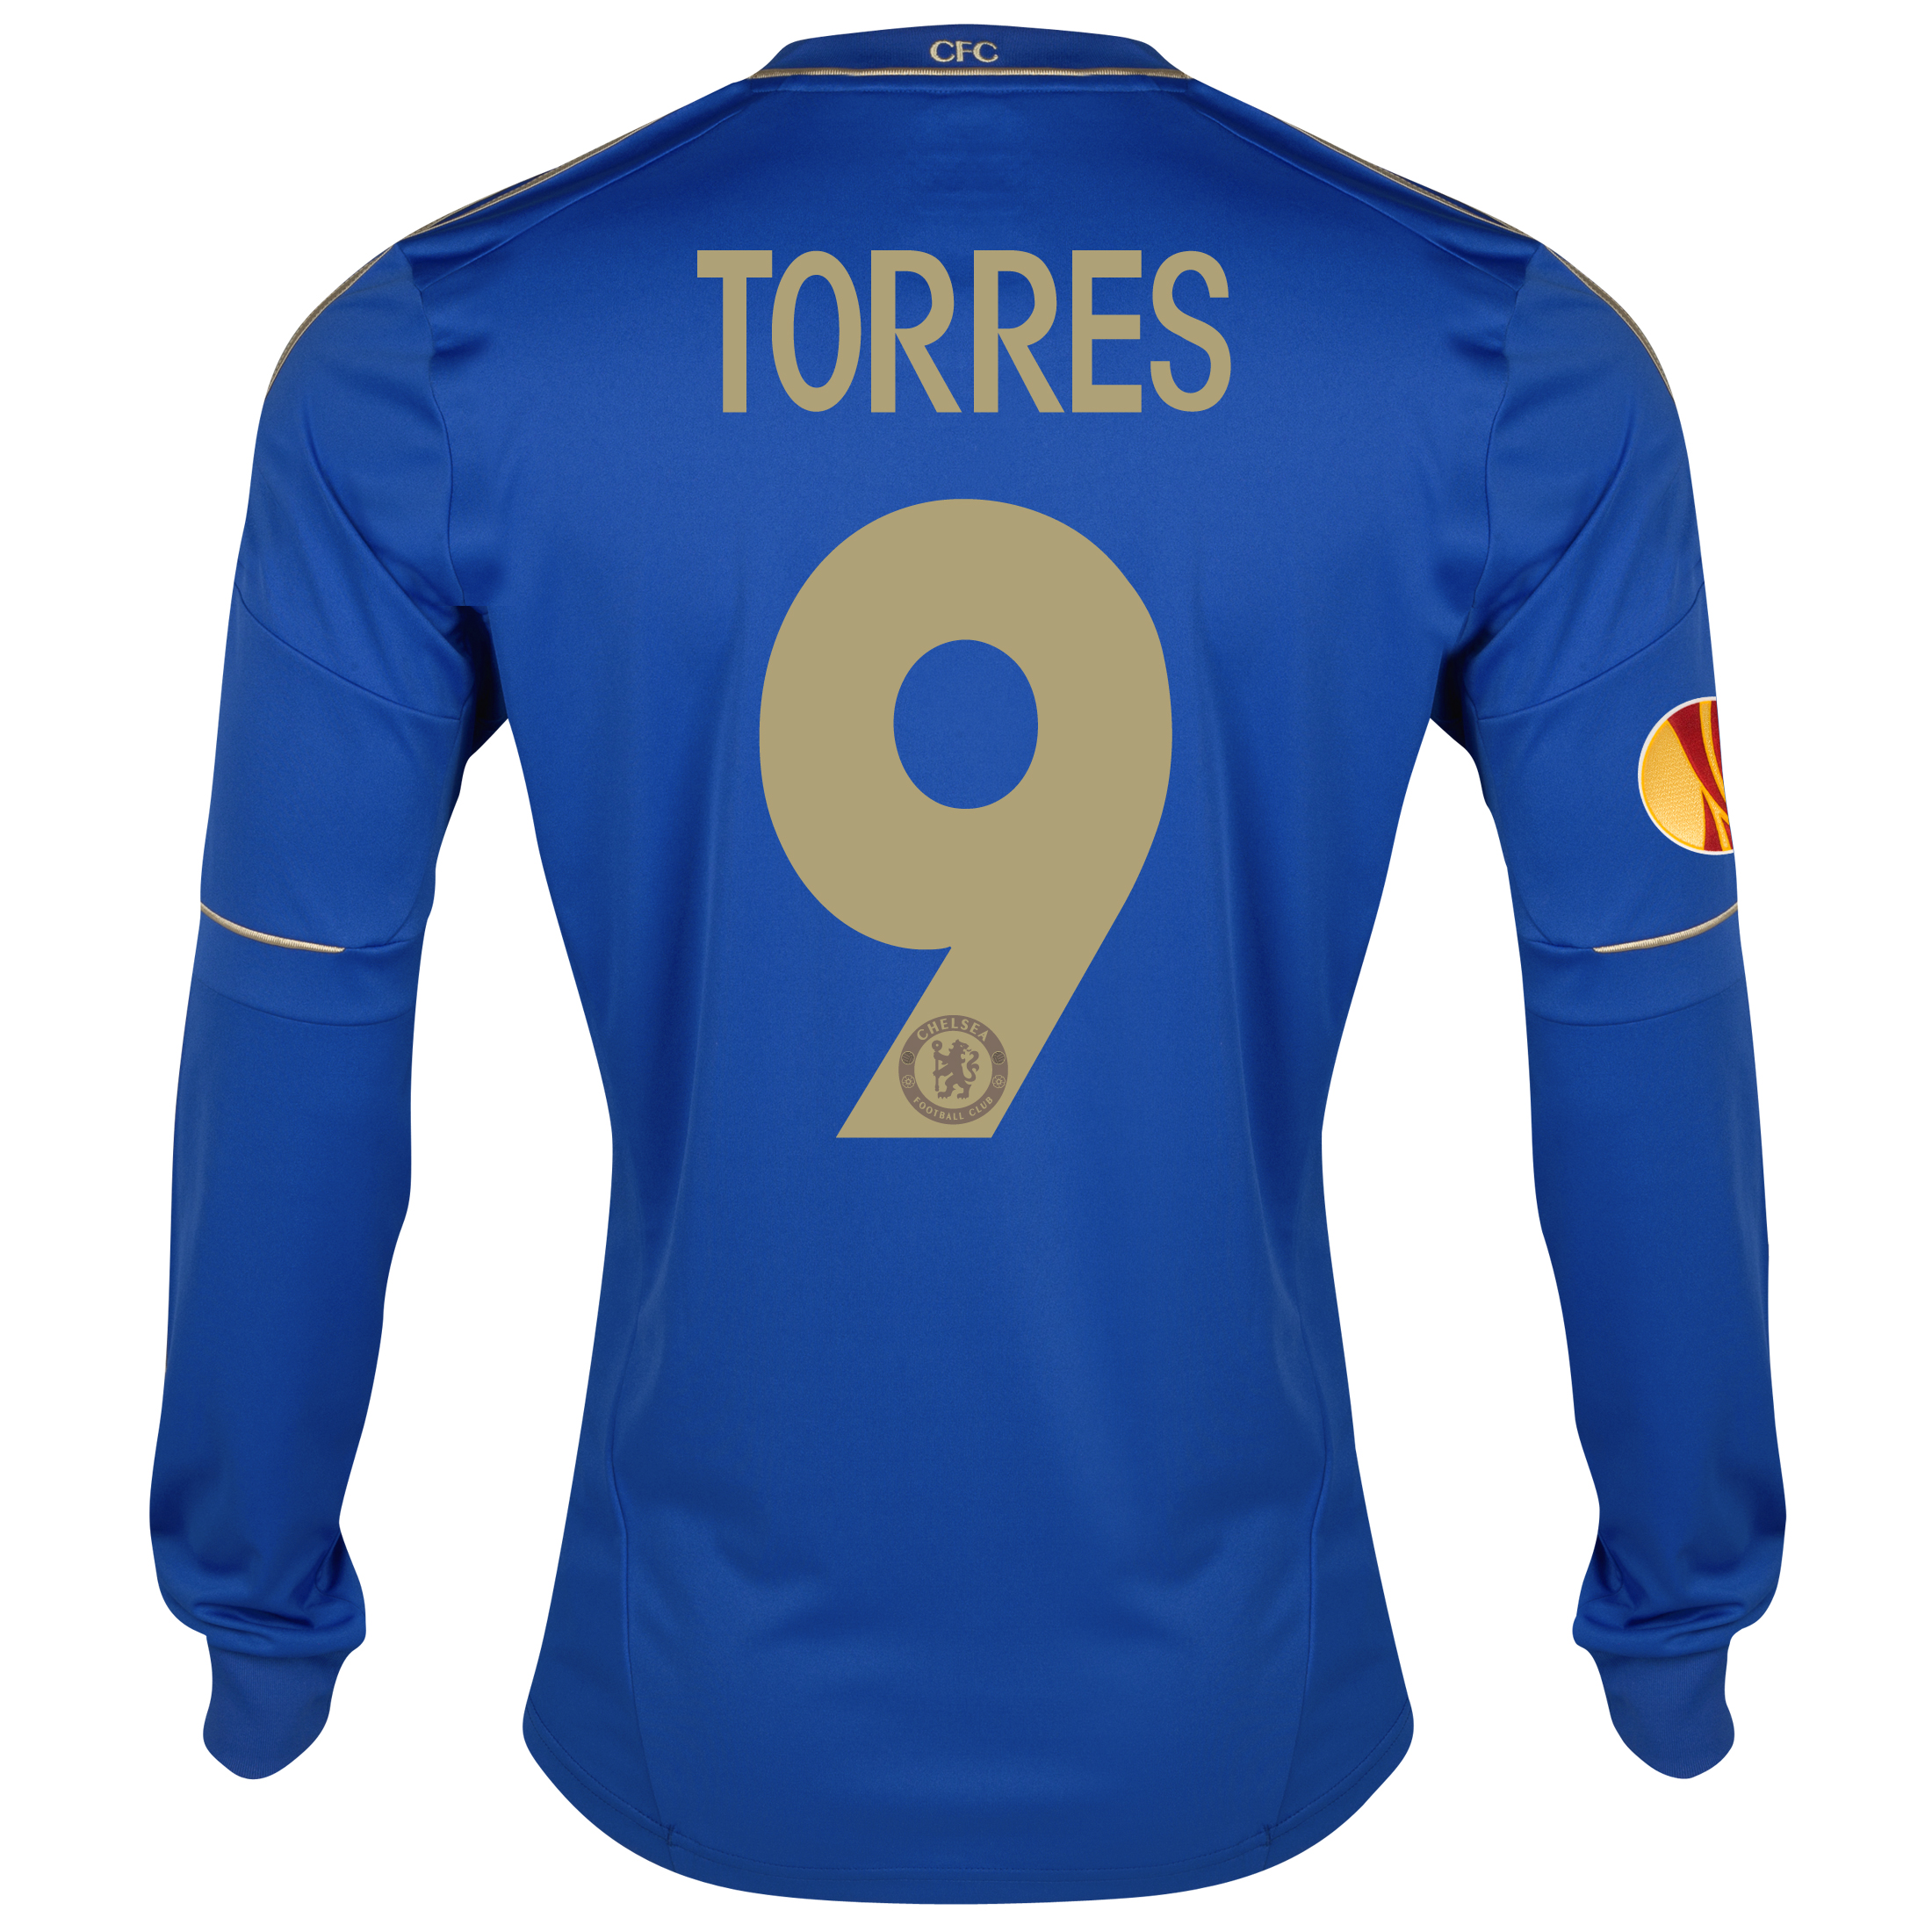 Chelsea UEFA Europa League Home Shirt 2012/13 - Long Sleeved with Torres 9 printing Including Europa Badge